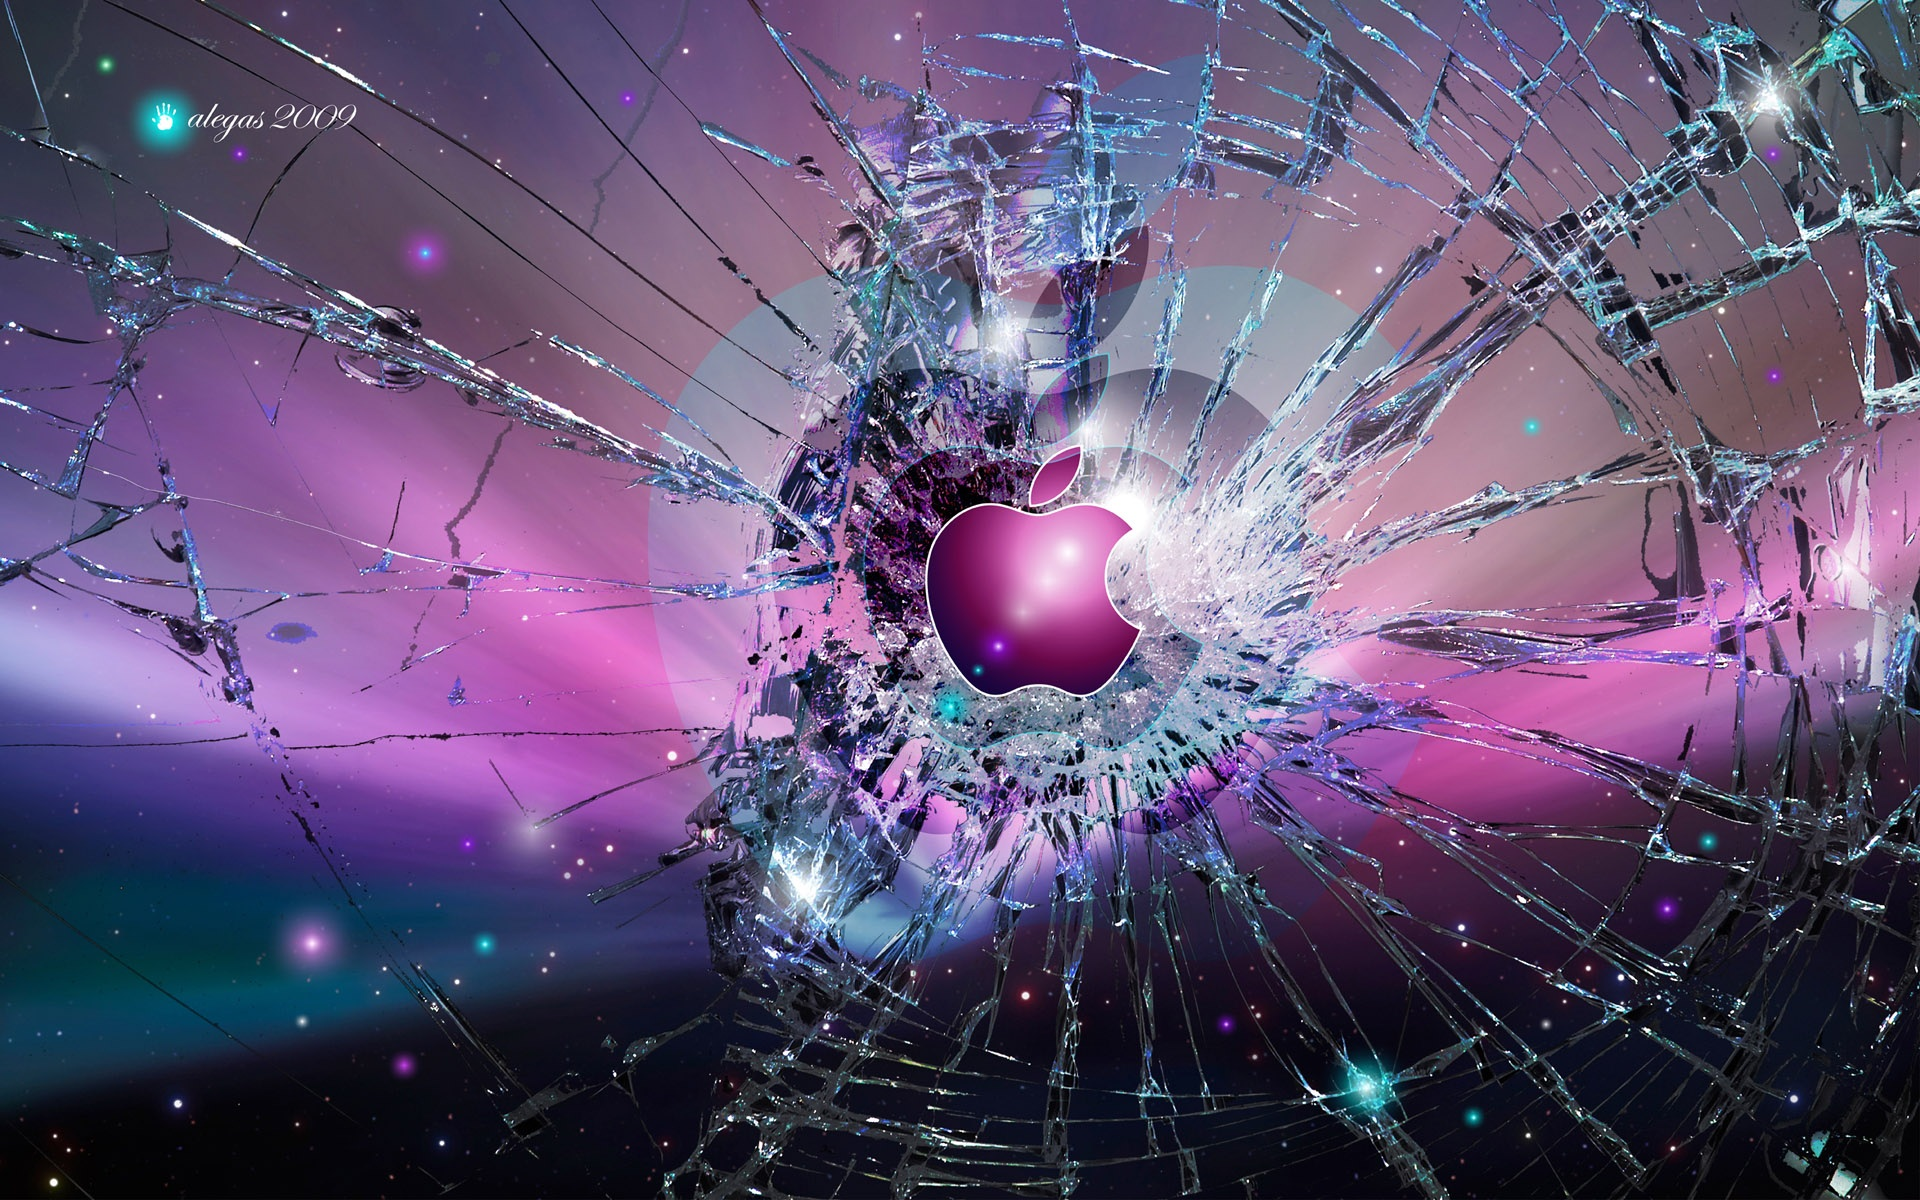 Wallpaper apple broken screen background 1920x1200 hd picture image download this wallpaper voltagebd Choice Image